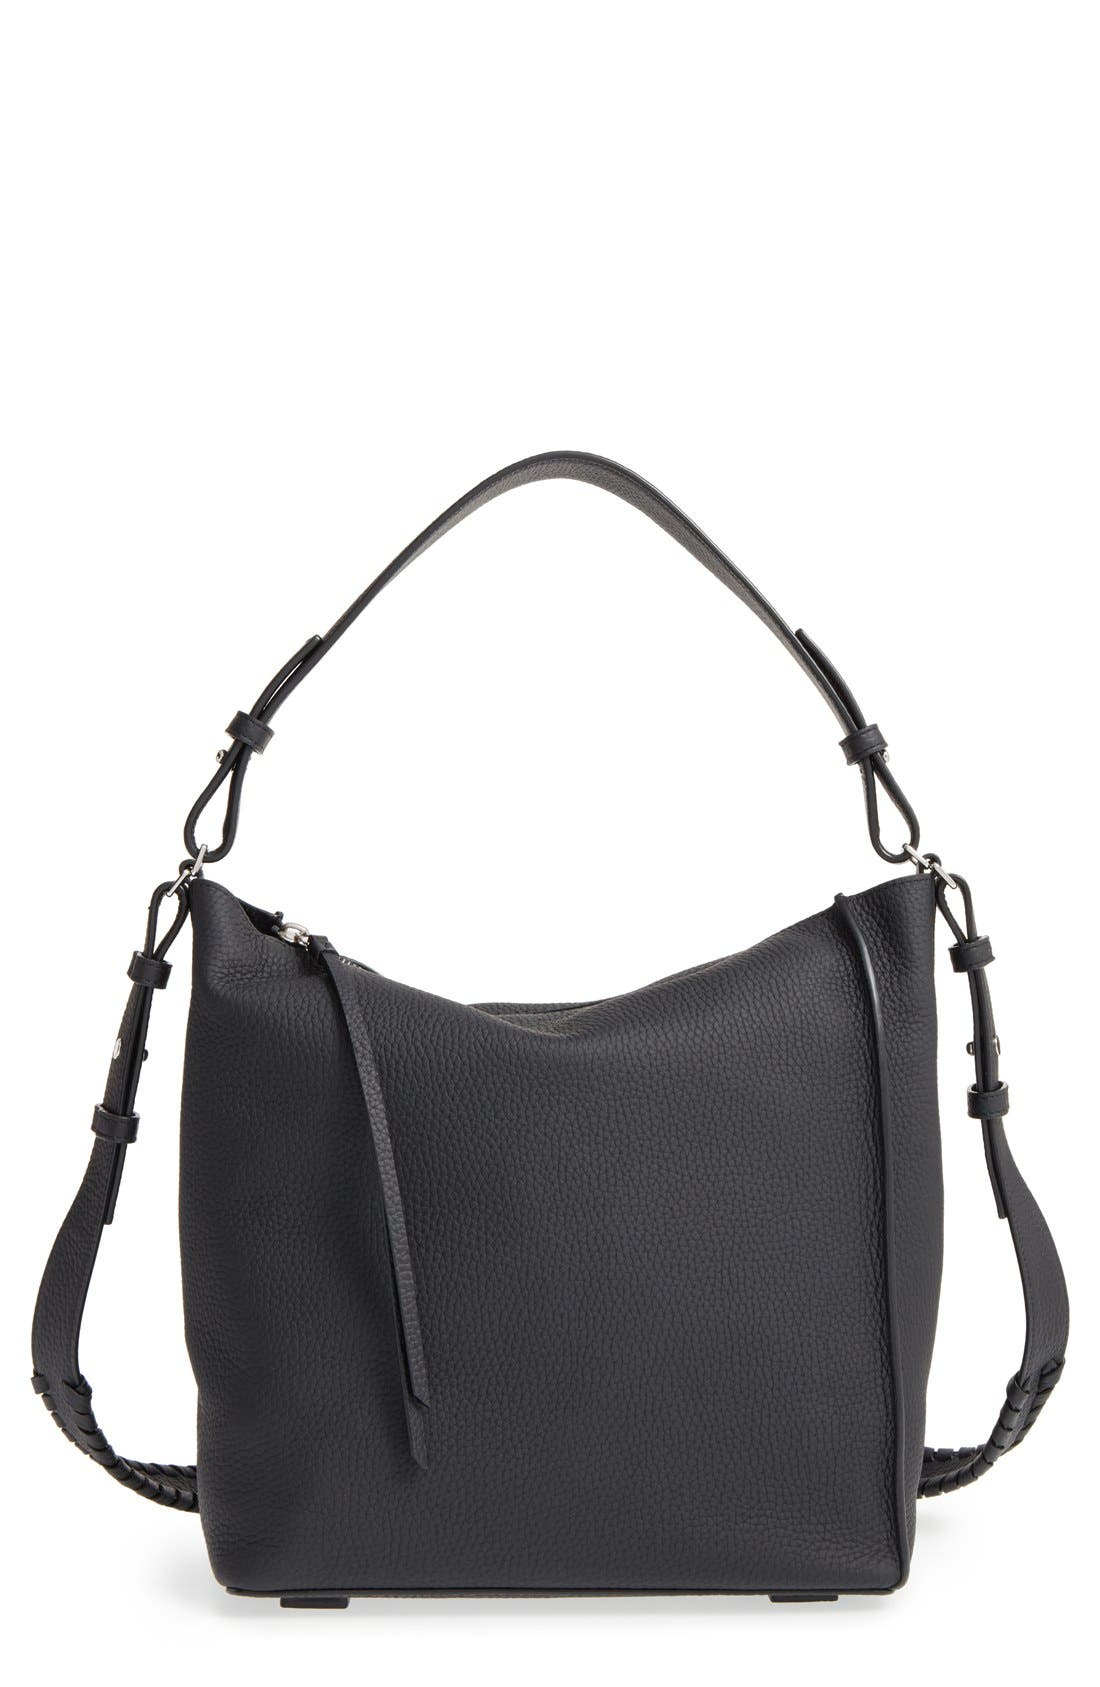 Alternate Image 1 Selected - ALLSAINTS 'Kita' Leather Shoulder/Crossbody Bag